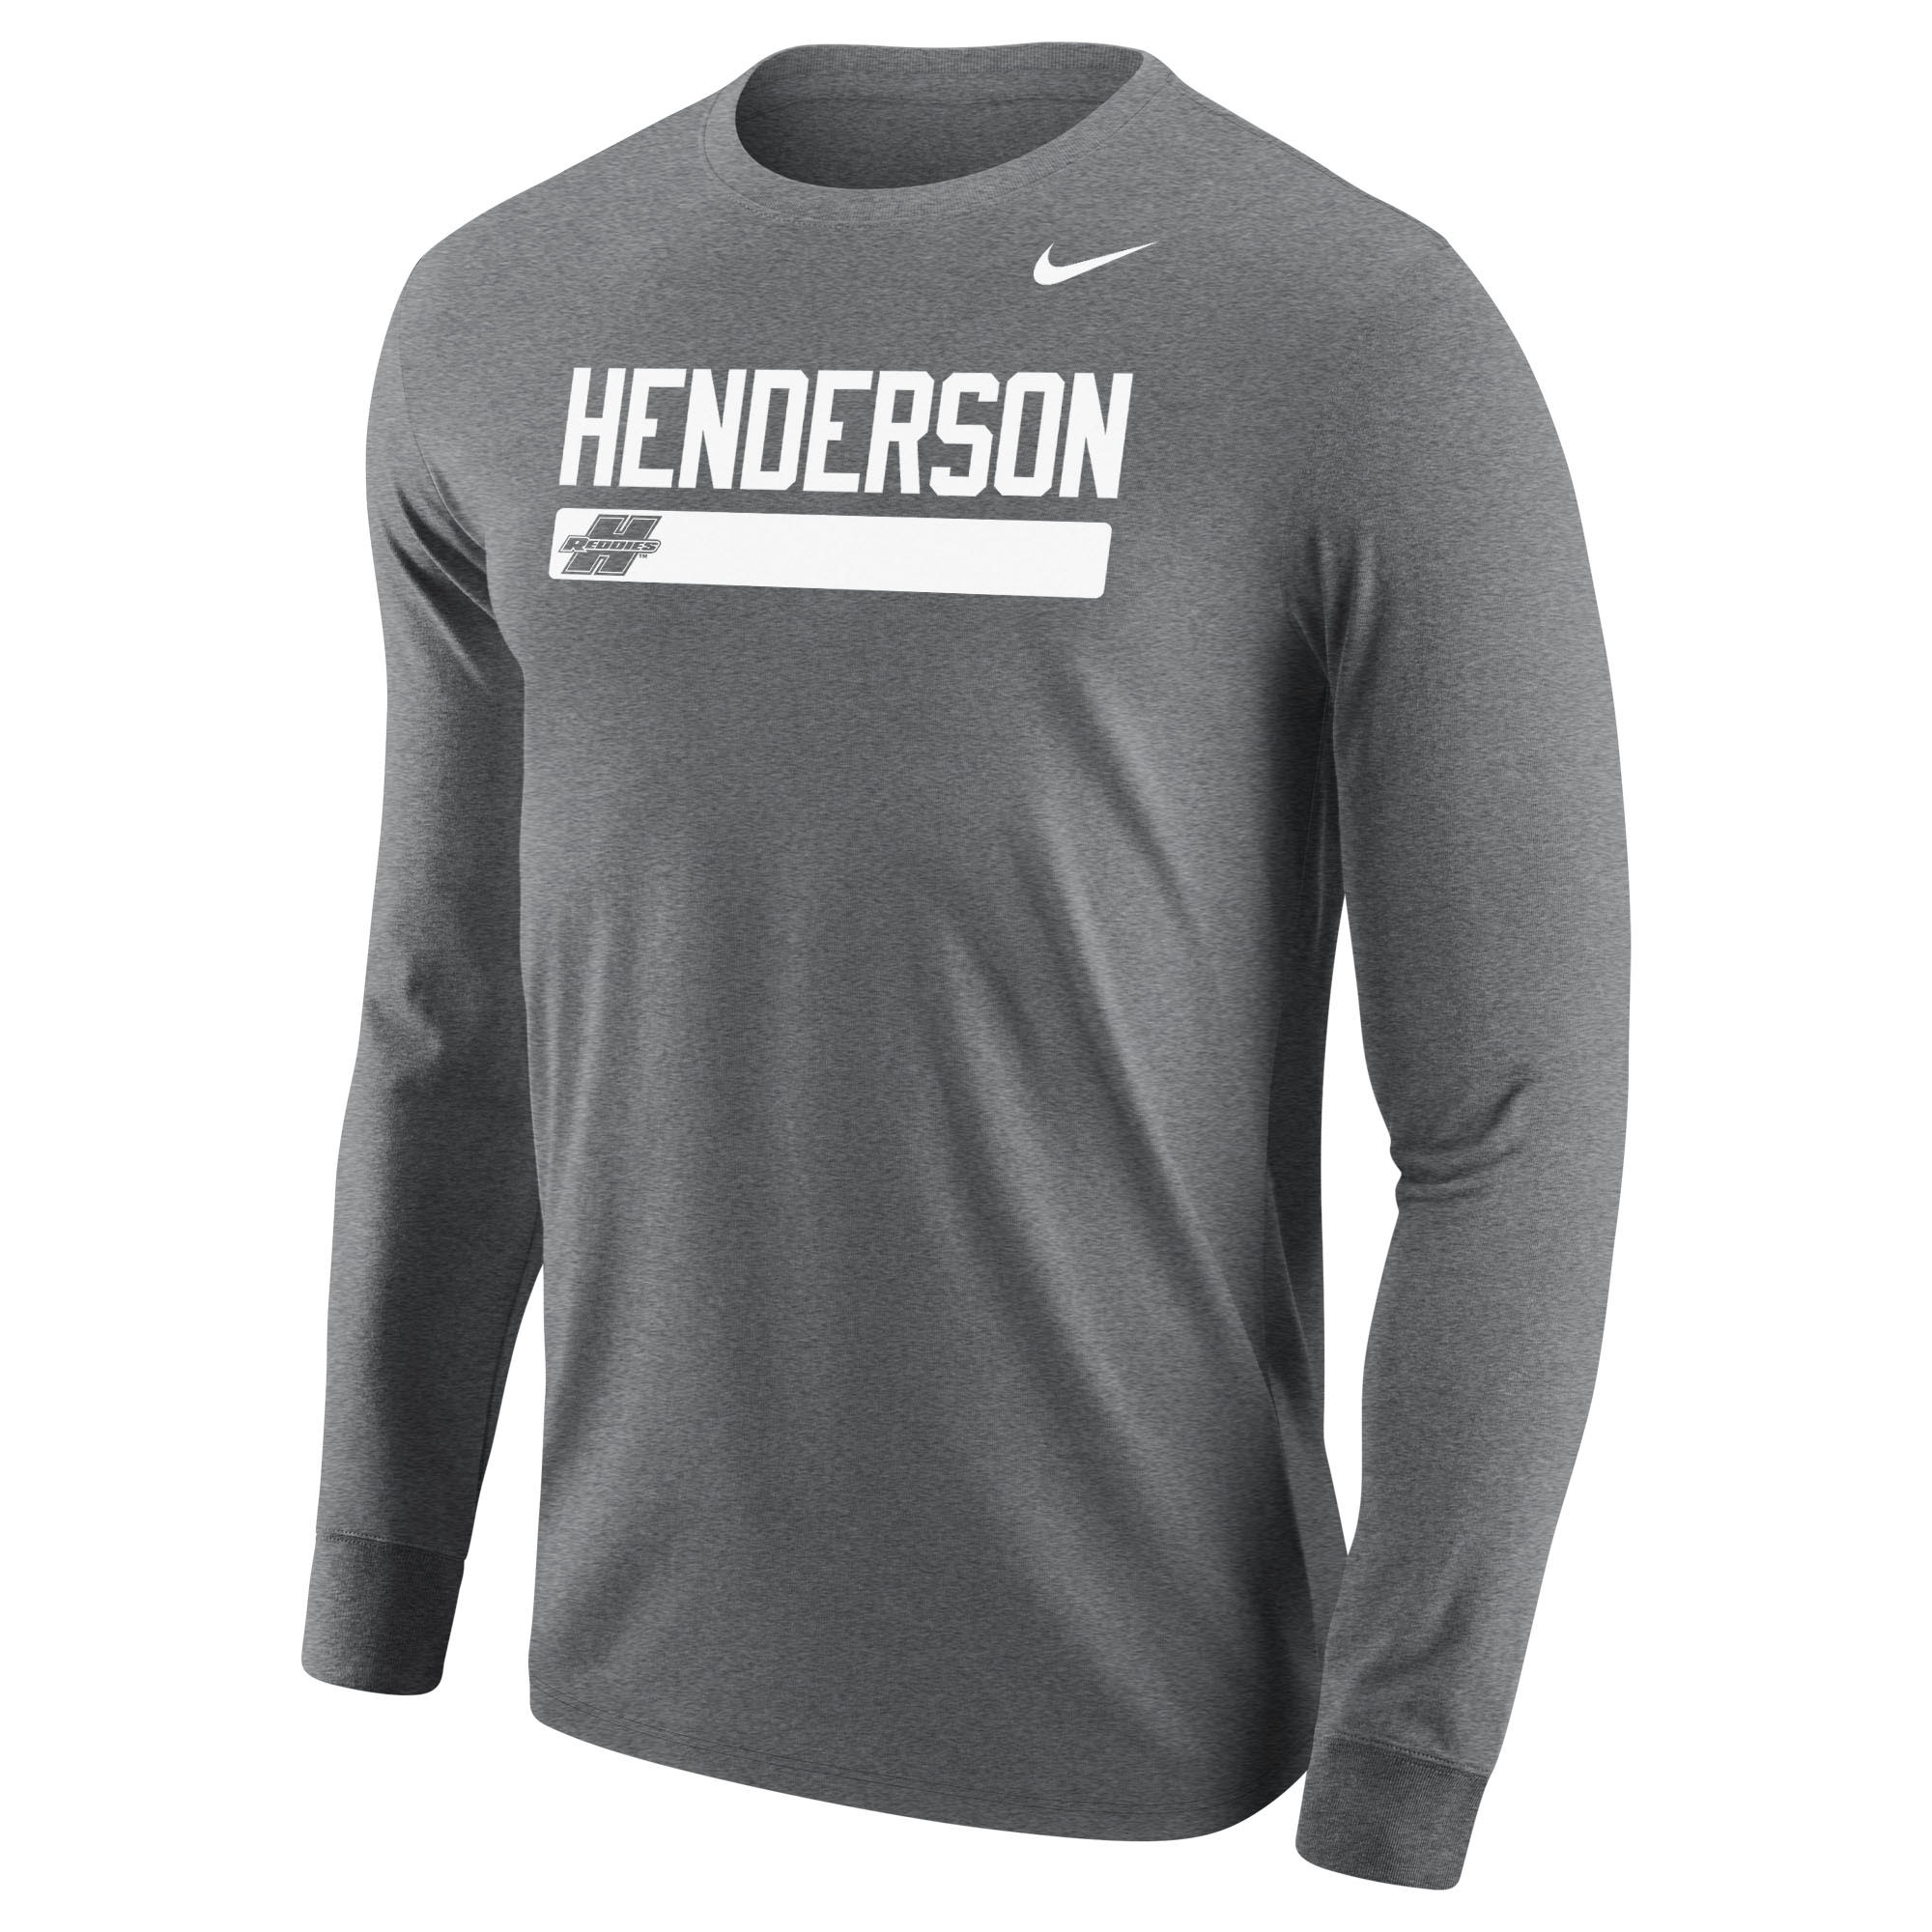 Henderson Reddies Core Long Sleeve T-Shirt